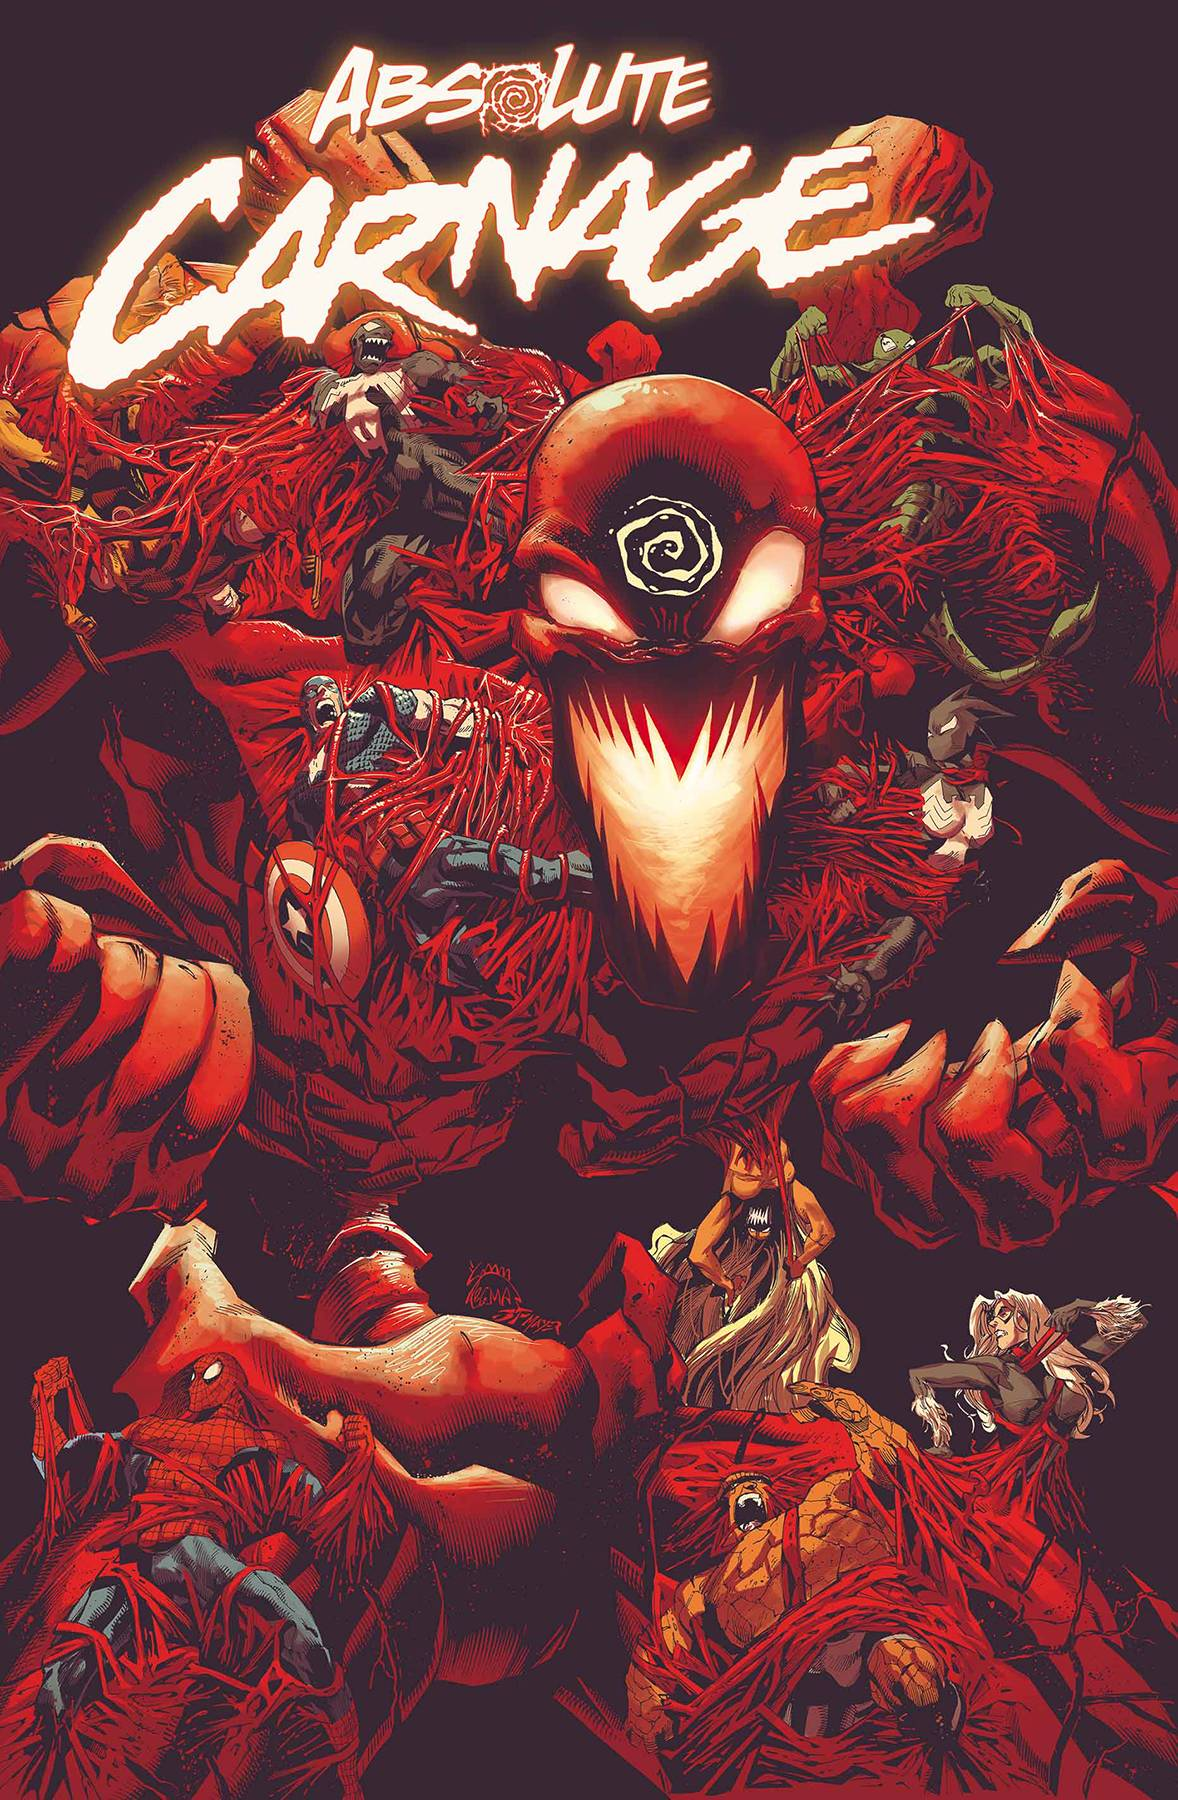 09/18/2019 ABSOLUTE CARNAGE #3 (OF 4) AC